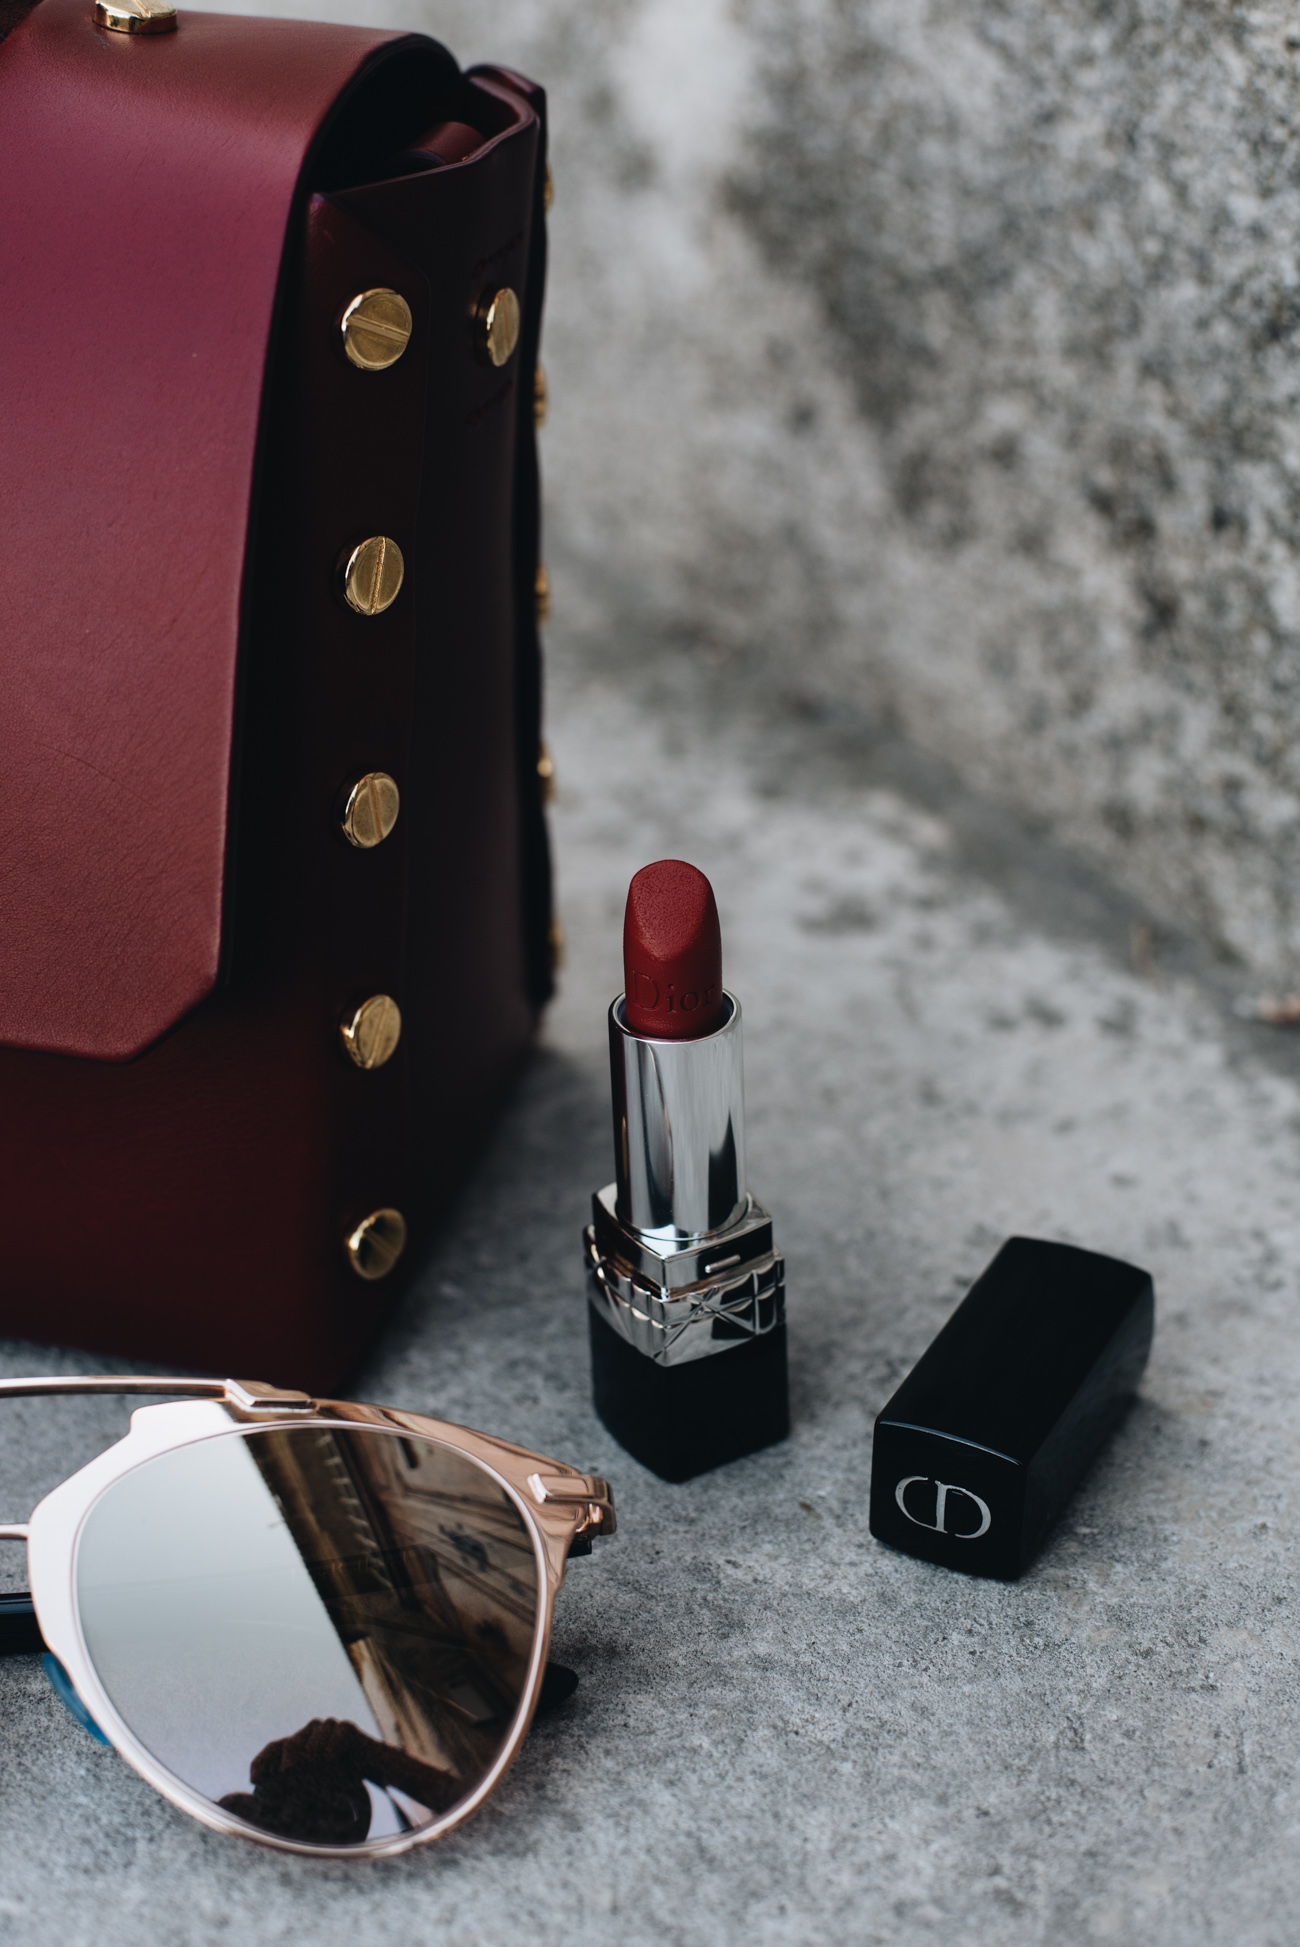 beauty-editorial-shooting-dior-lippenstift-rouge-999-matt-nina-schwichtenberg-fashiioncarpet